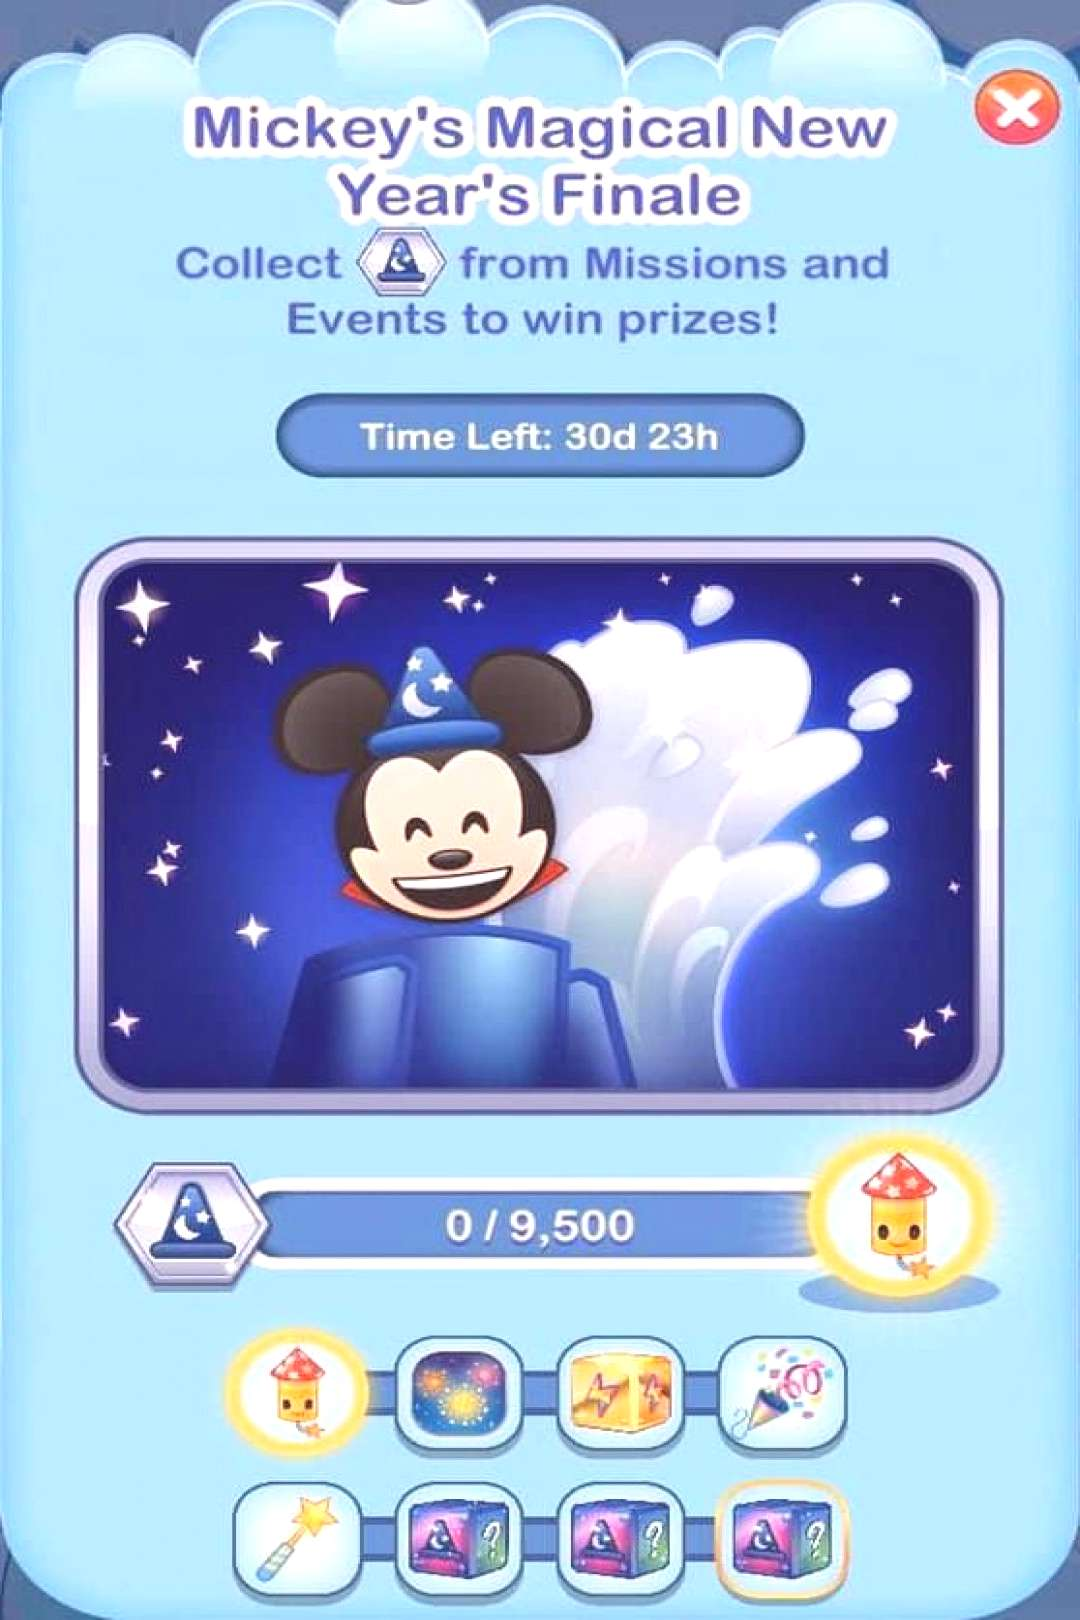 Mickeys Magical New Years Finale Token Event (Drawing by Disney)